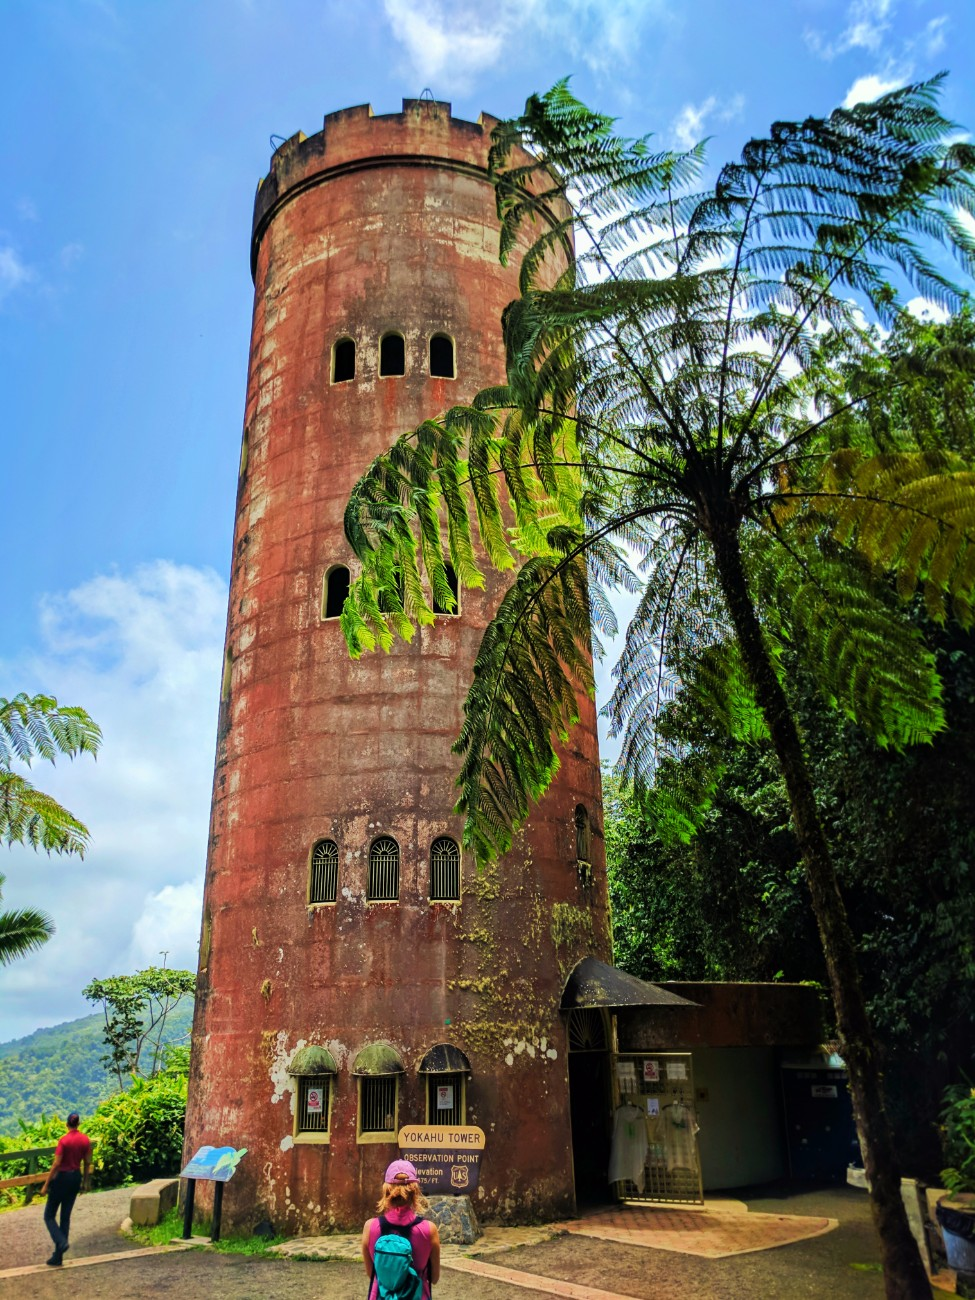 Historic Yokahu tower in Rainforest El Yunque National Forest Puerto Rico 5